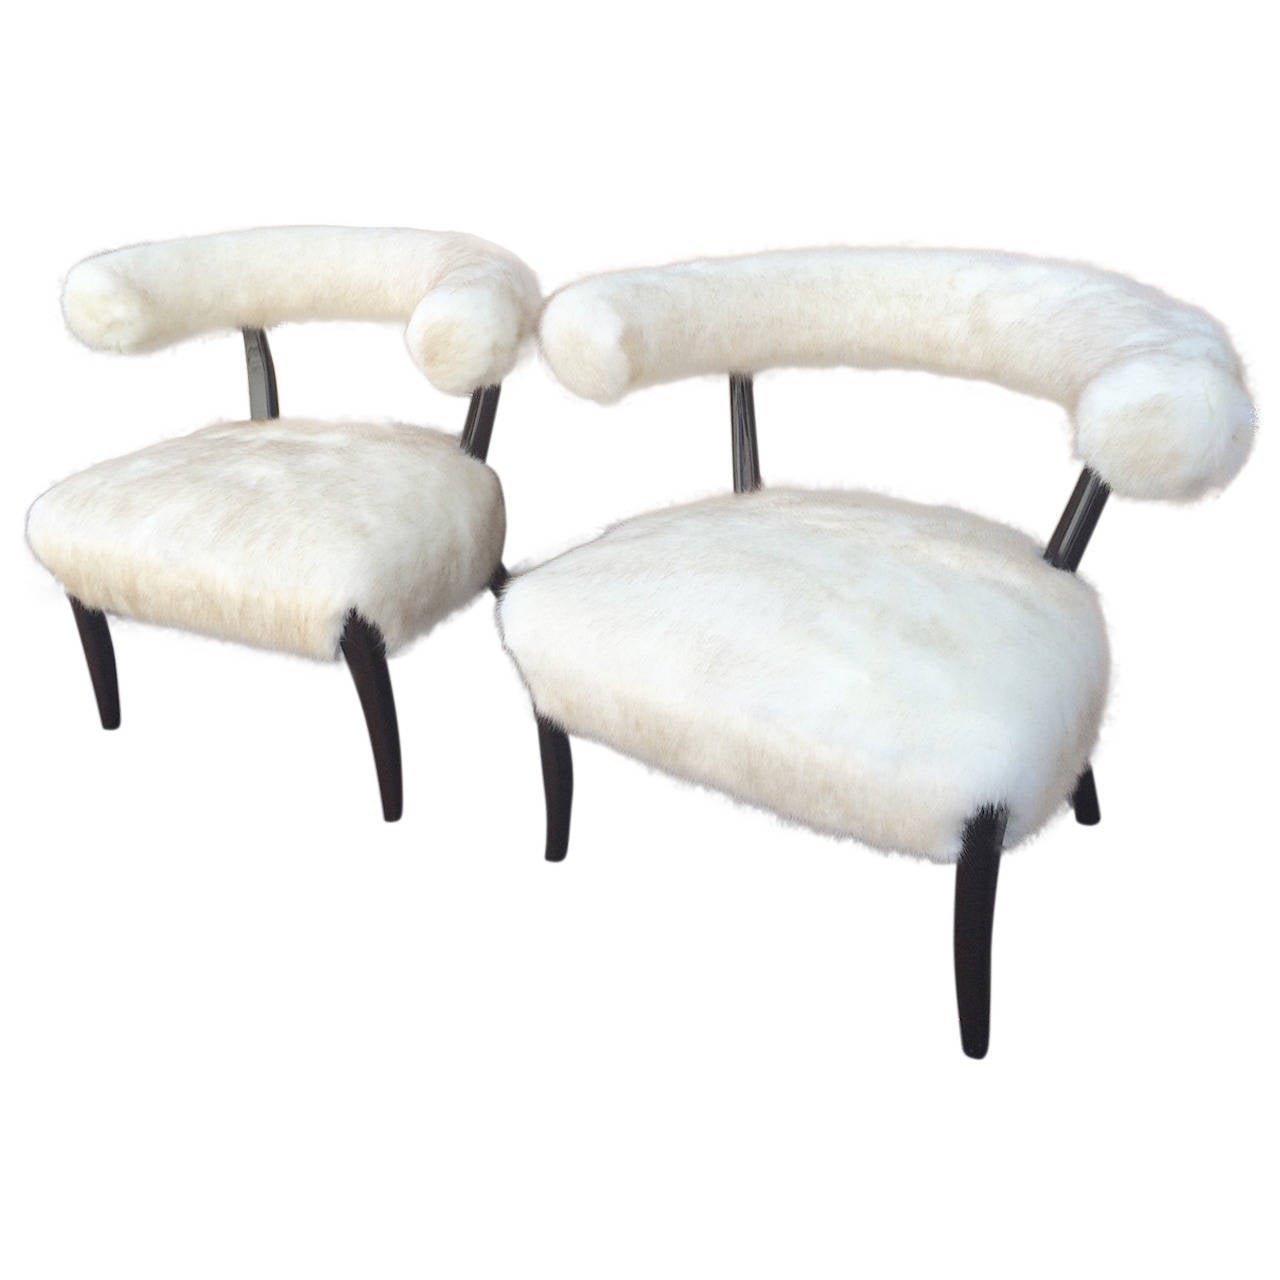 saucer chairs sam s club wheelchair shower pair of bergere attributed to nanna ditzel newly